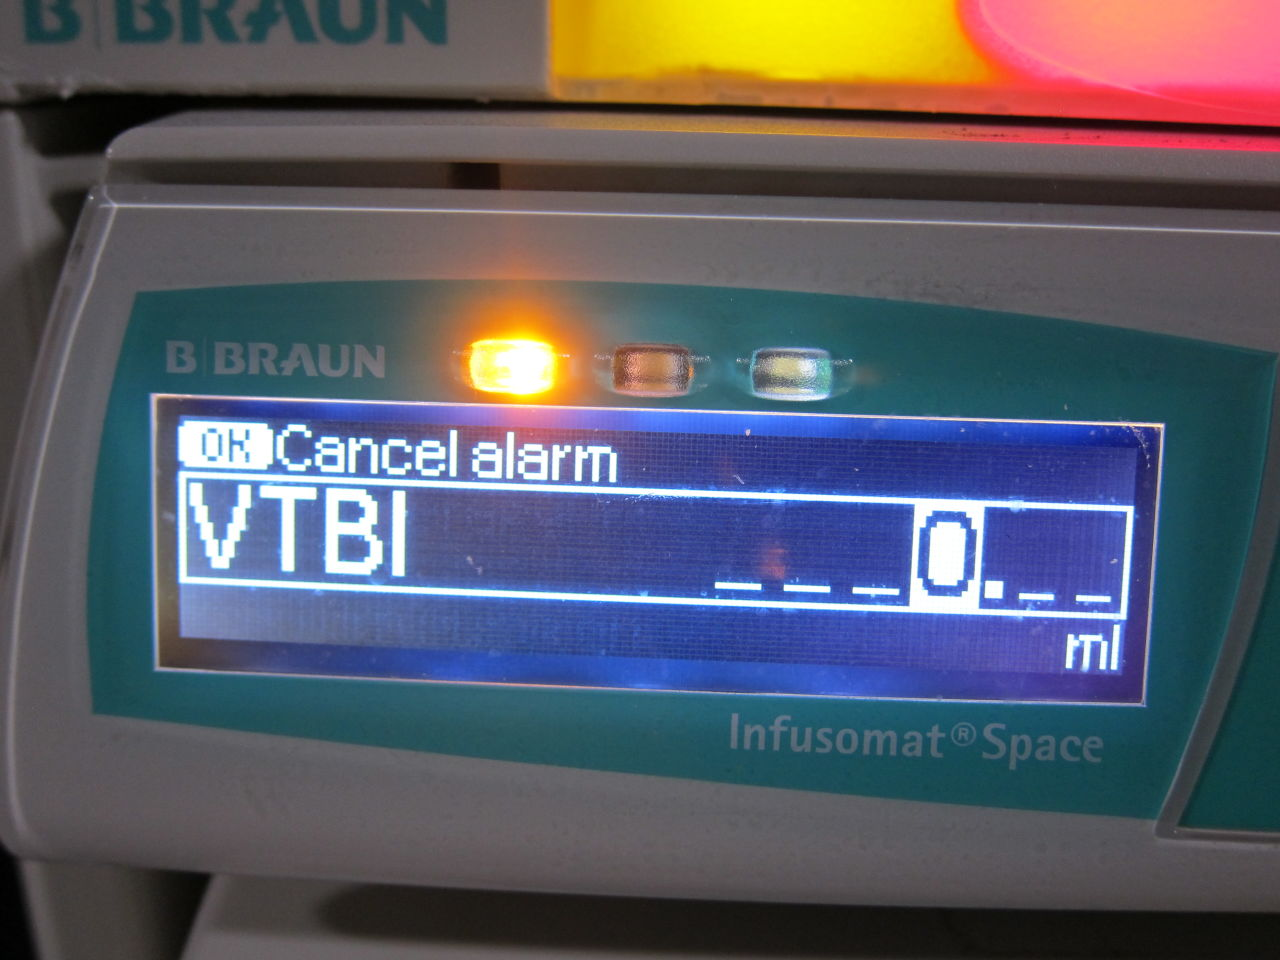 BRAUN Space Station Pump Rack Pump IV Infusion